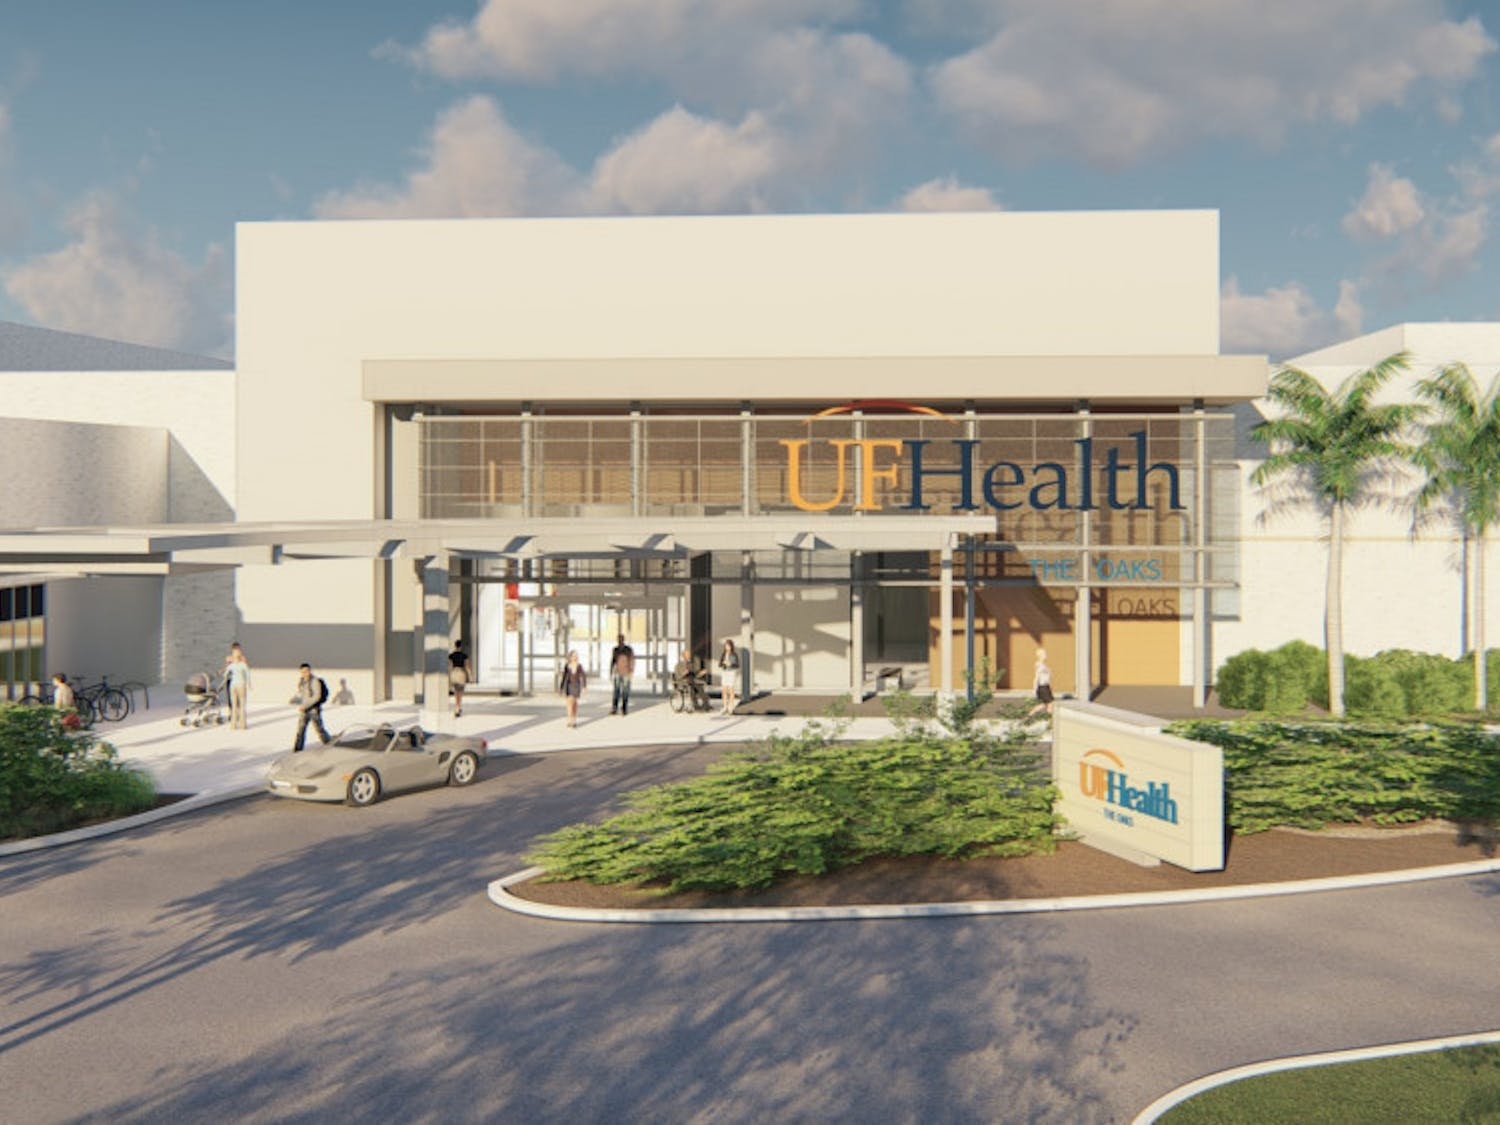 A rendering of the UF Health The Oaks, which is scheduled to open in January 2020 in the former Sears in the Oaks Mall. The UF Board of Trustees approved $73 million for the project. Courtesy to The Alligator.